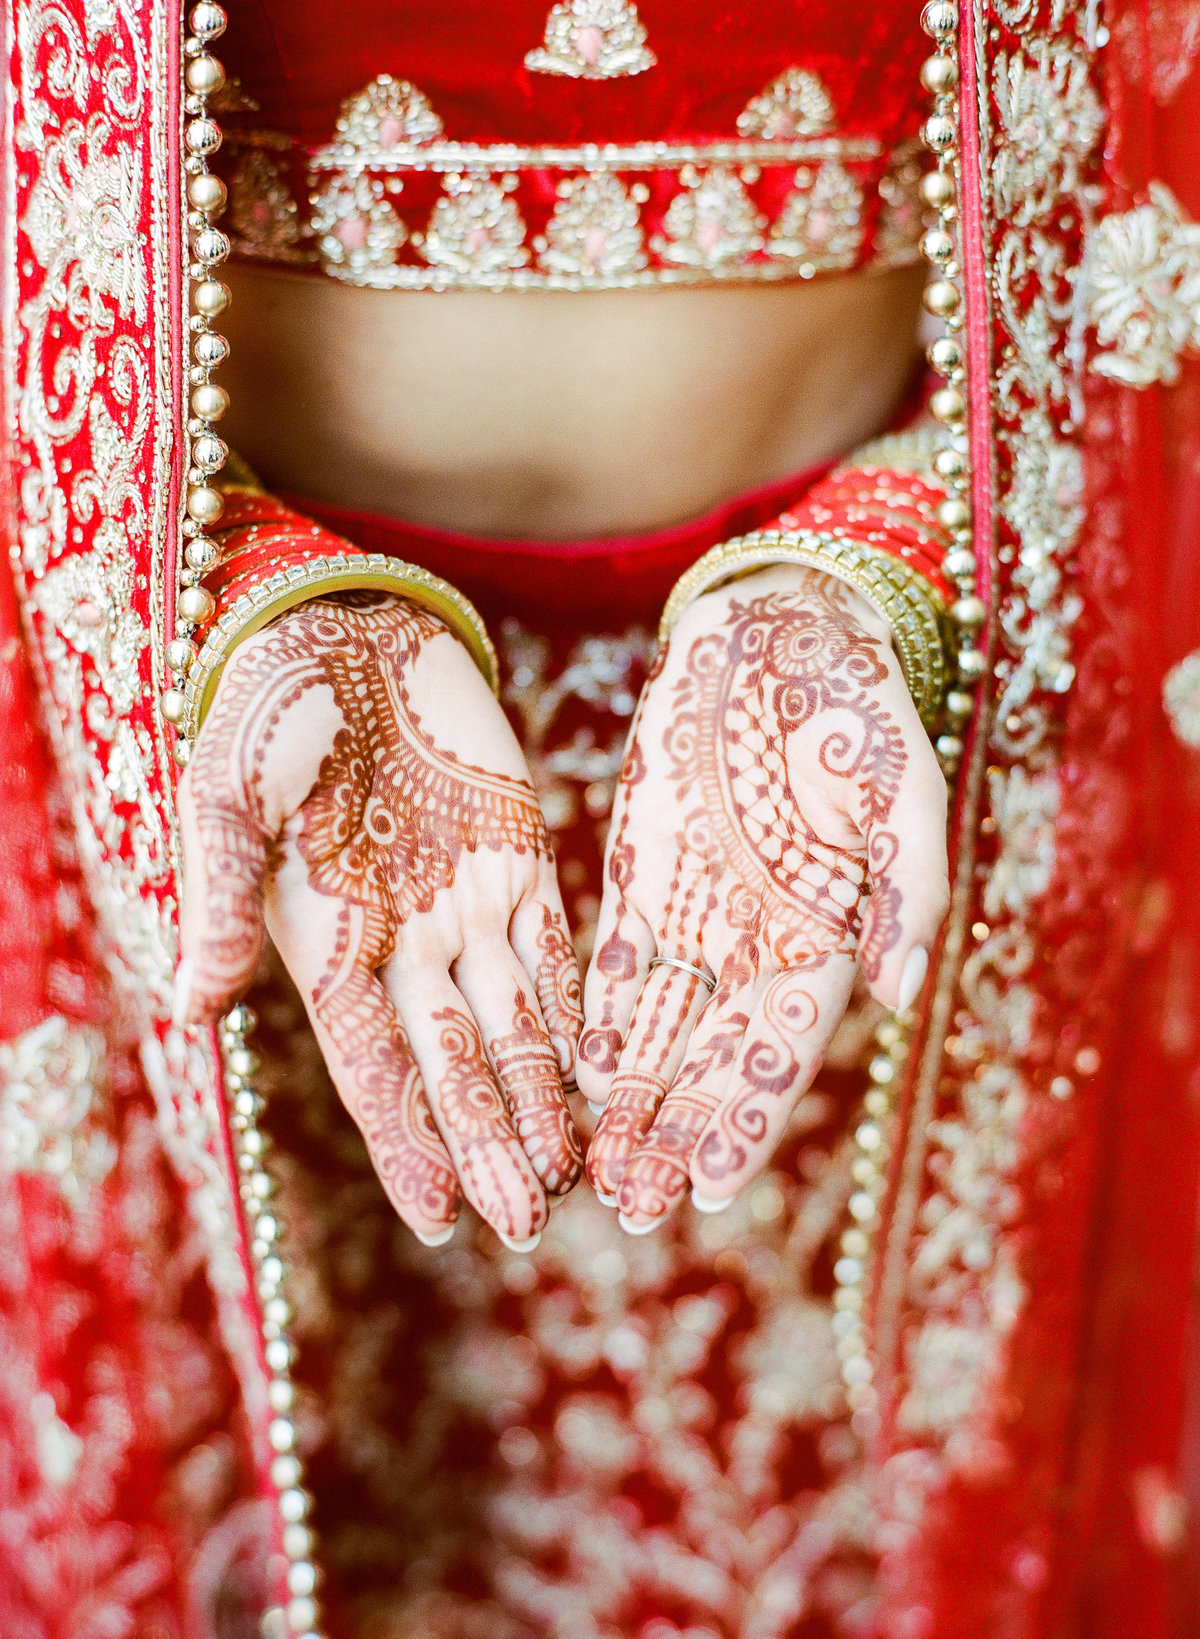 sasha-aneesh-wedding-bride-groom-indian-38